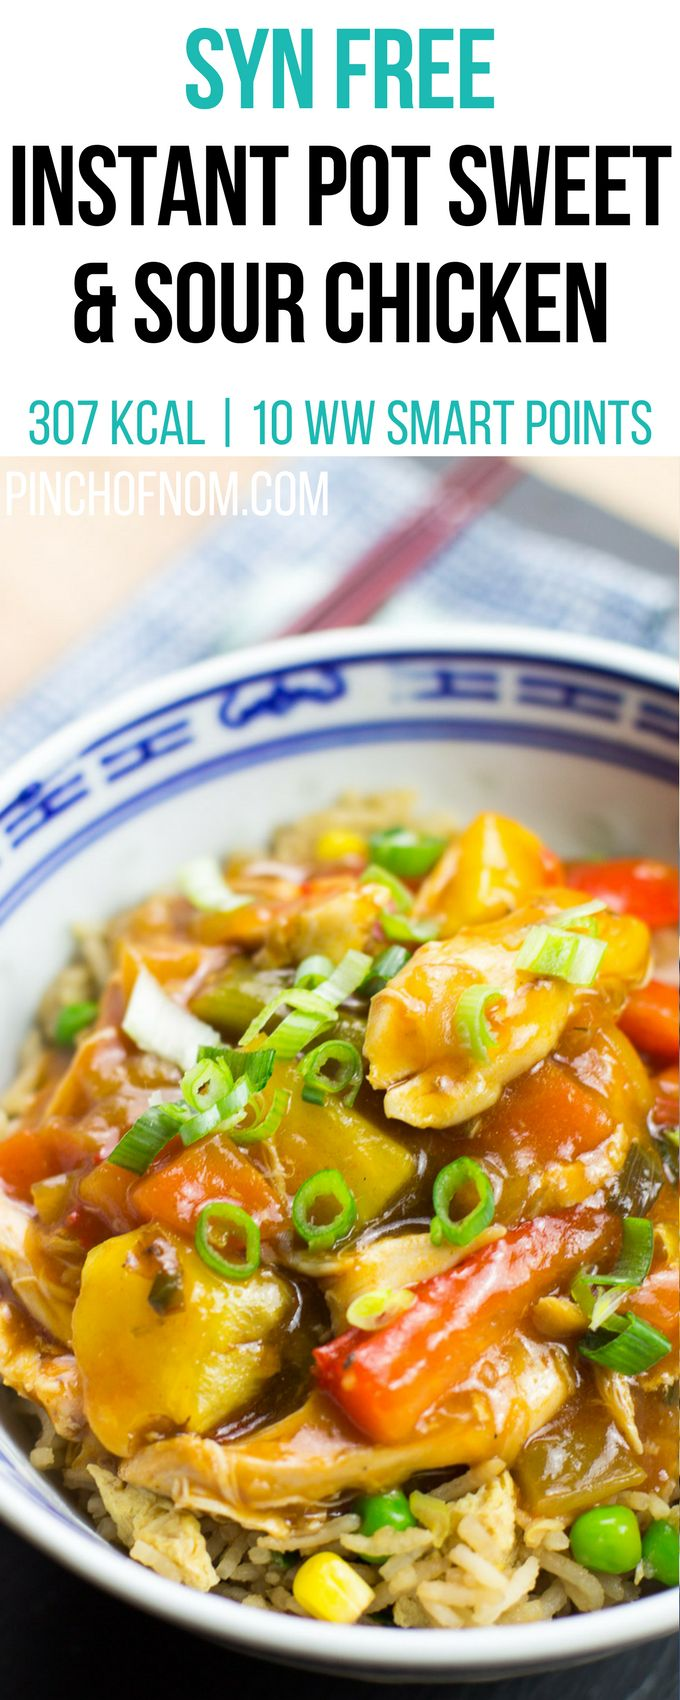 Syn Free Instant Pot Sweet And Sour Chicken | Pinch Of Nom Slimming World Recipes 307 kcal | Syn Free | 10 Weight Watchers Smart Points